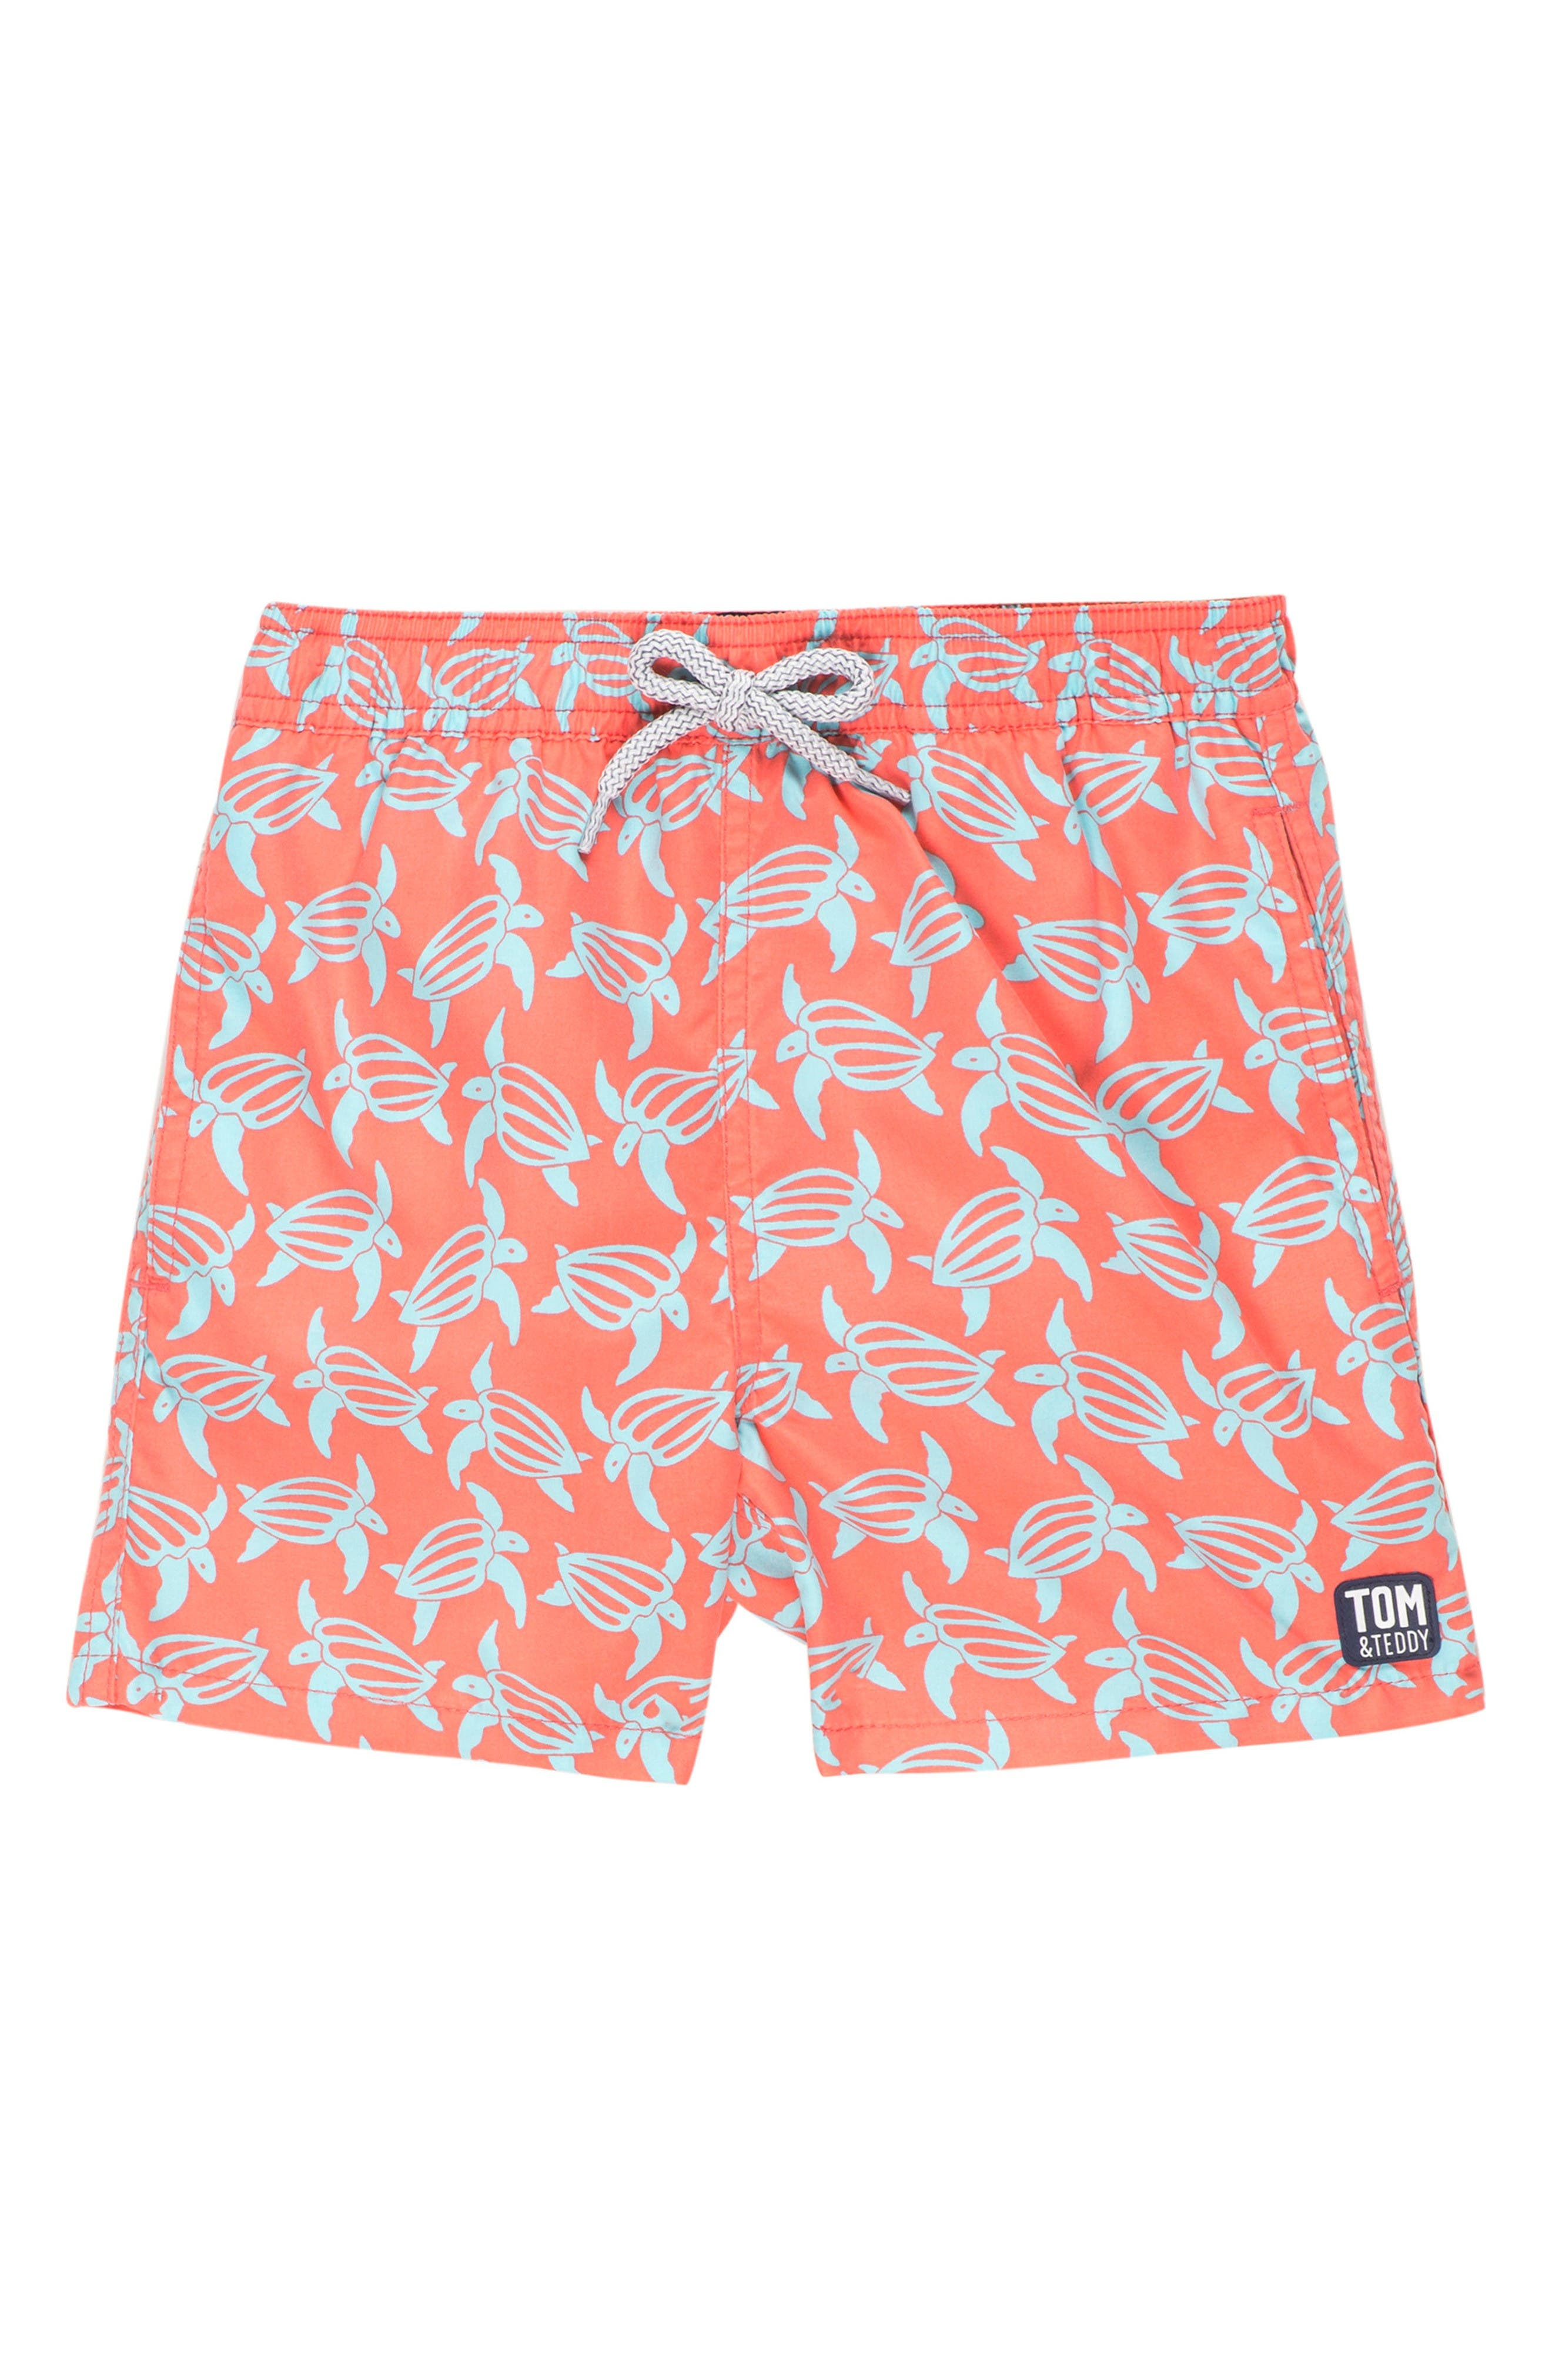 Tom & Teddy Turtle Swim Trunks (Toddler Boys, Little Boys & Big Boys)